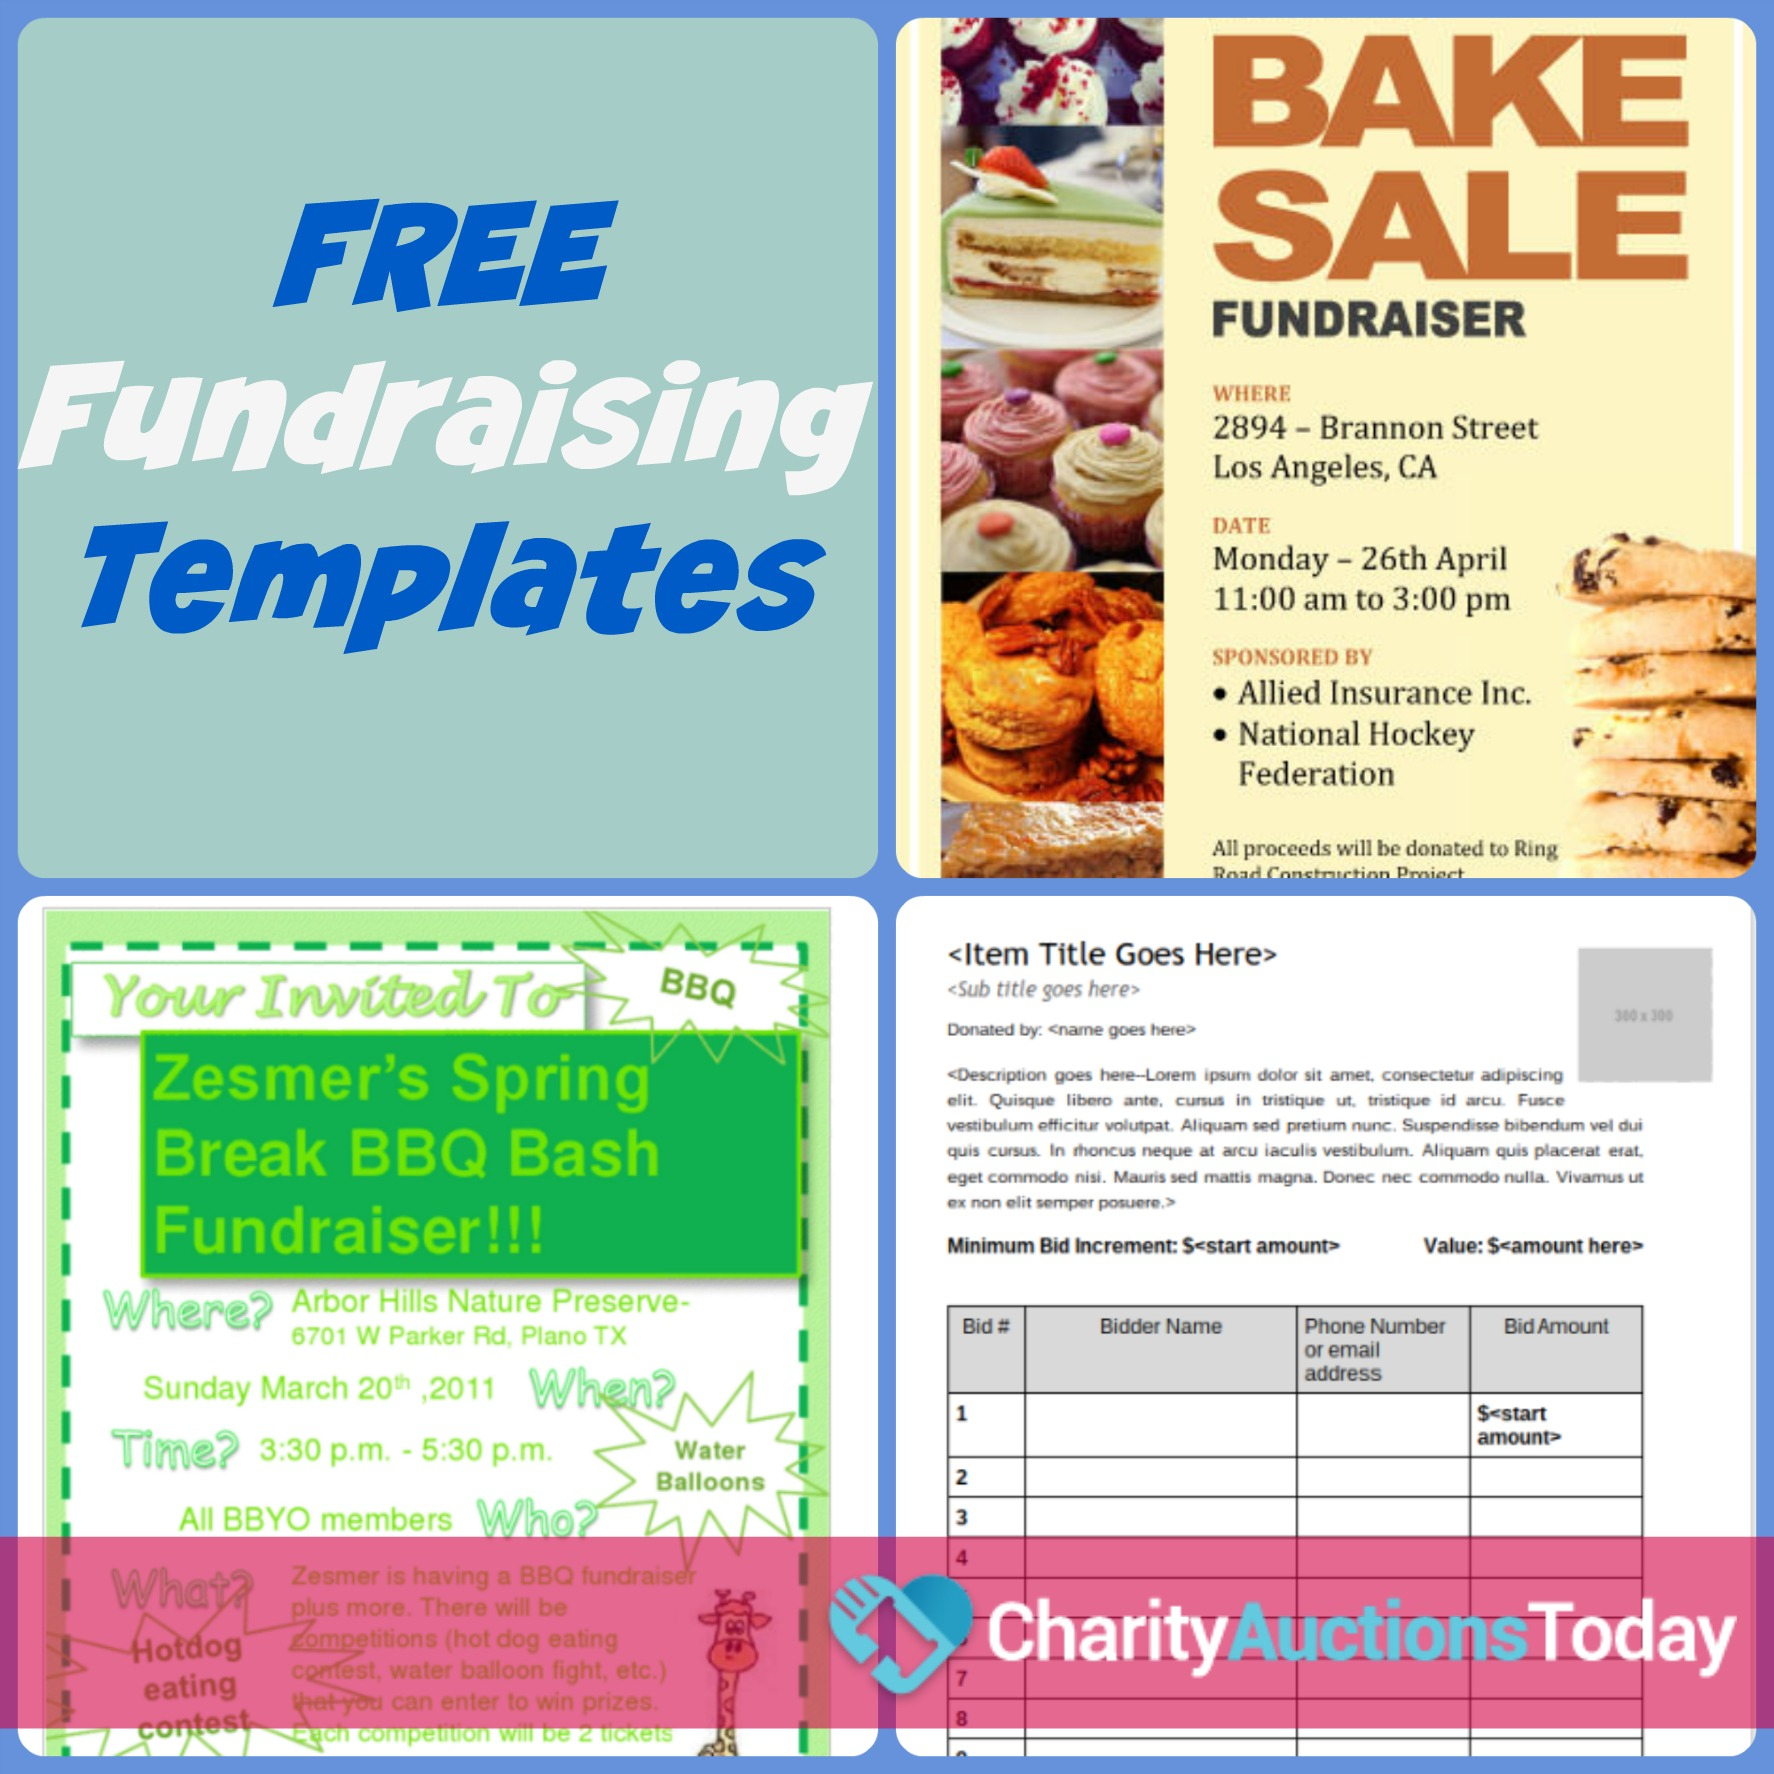 Free Fundraiser Flyer | Charity Auctions Today - Free Printable Flyer Maker Online